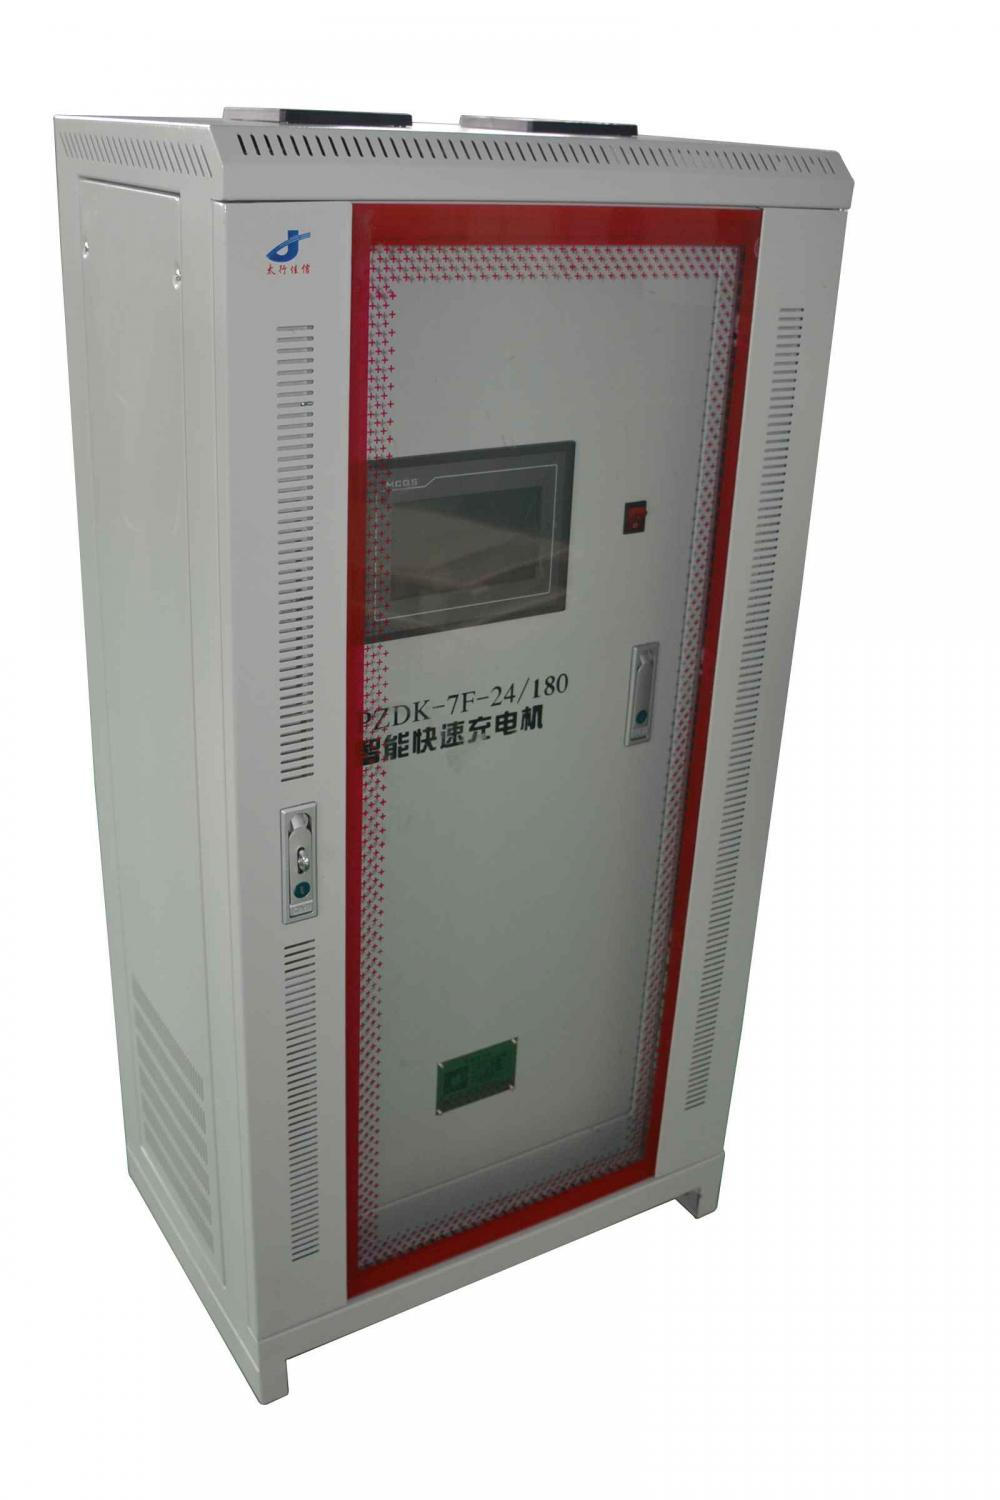 SMPS Automated Guided Vehicle Li-ion Battery Charger